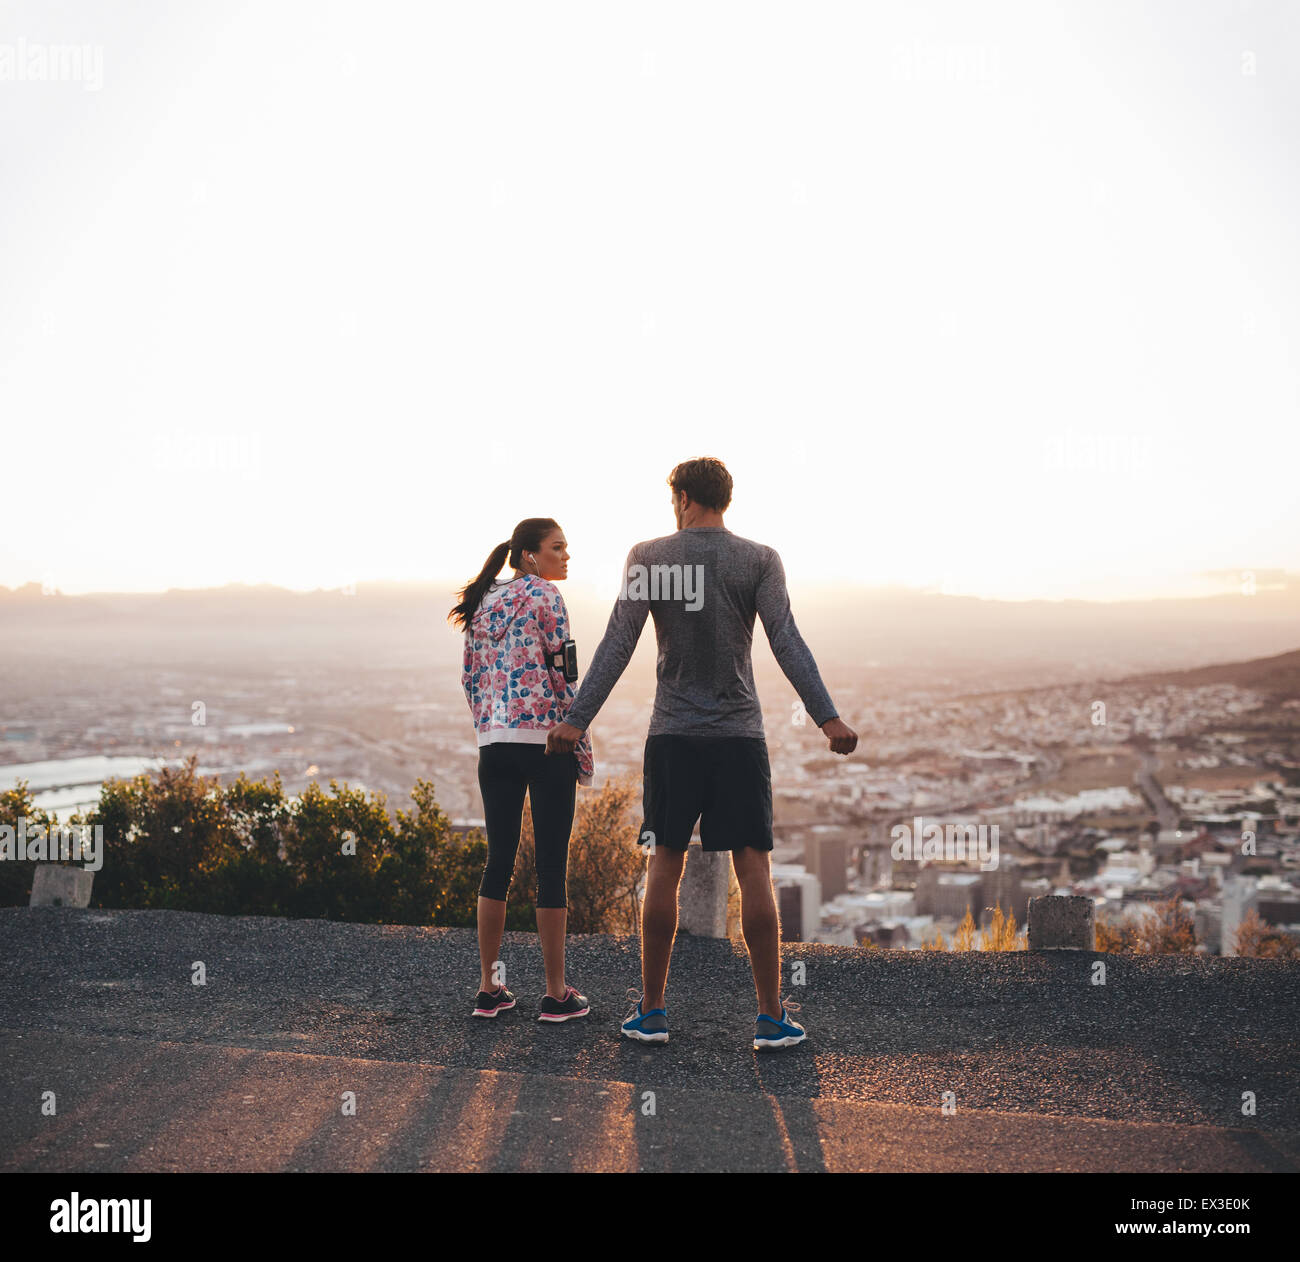 Rear view of a young couple standing together at sunrise. Joggers on hillside in morning. - Stock Image